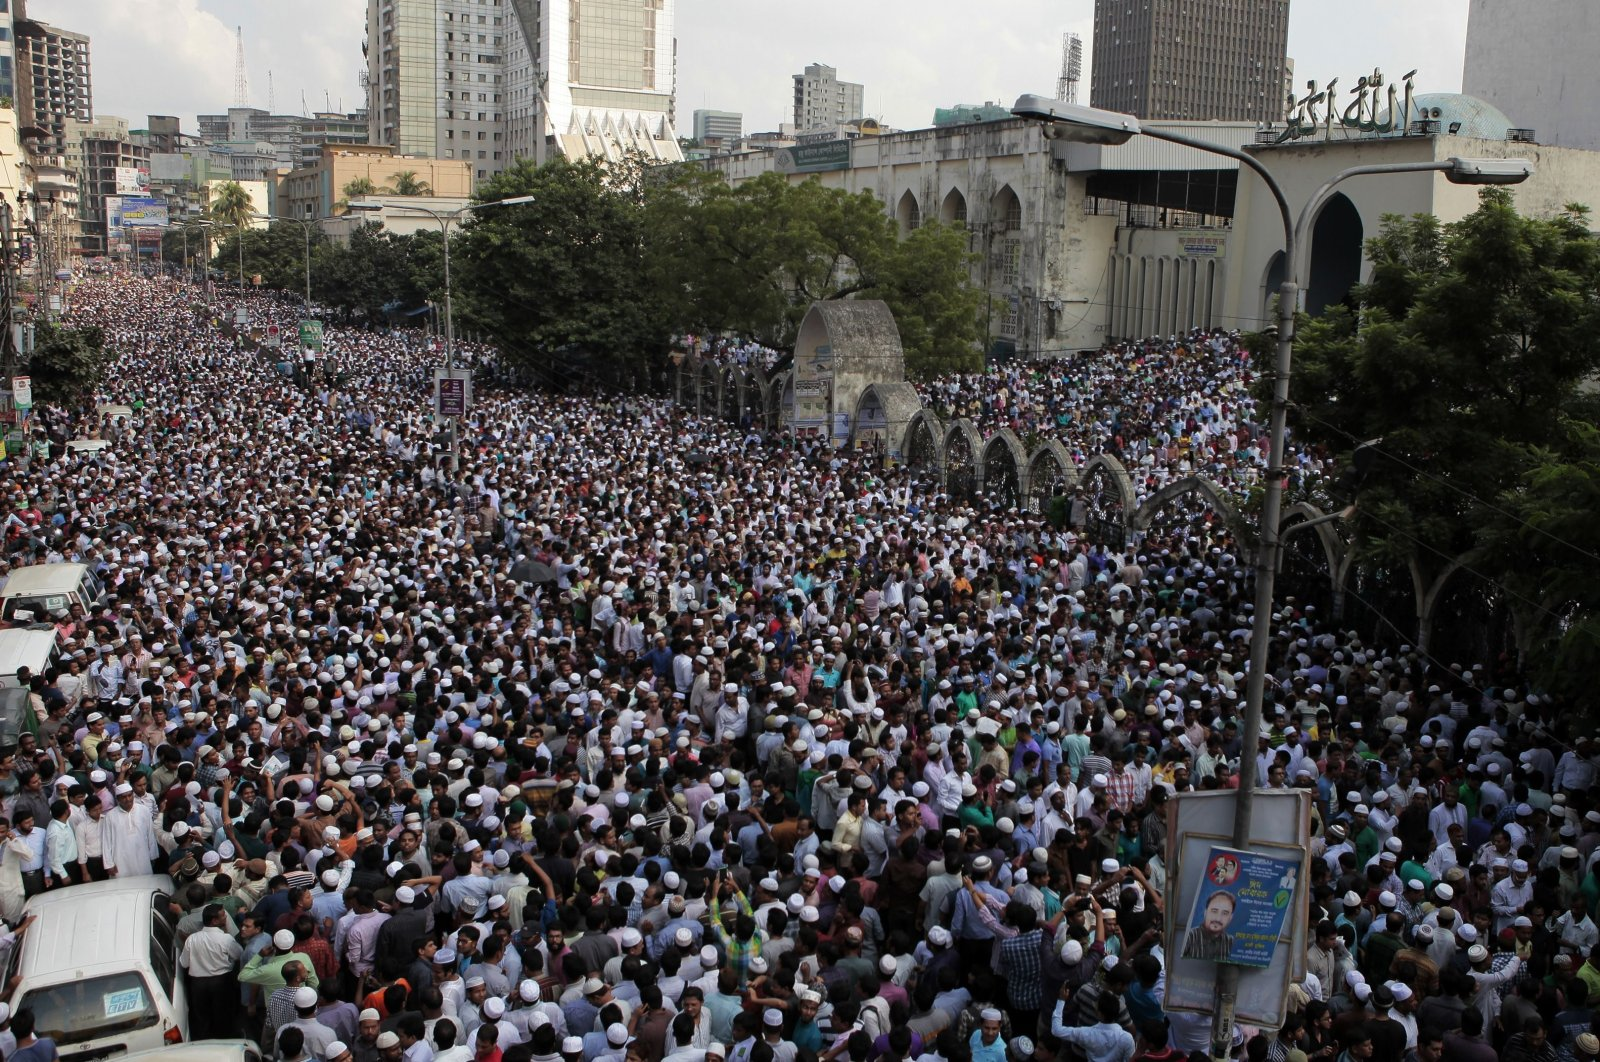 Bangladeshi activists and supporters of the Jamaat-e-Islami party gather outside the national mosque to offer prayers at the funeral of former party leader Ghulam Azam, who died in police custody, Dhaka, Bangladesh, Oct. 25, 2014. (AFP Photo)